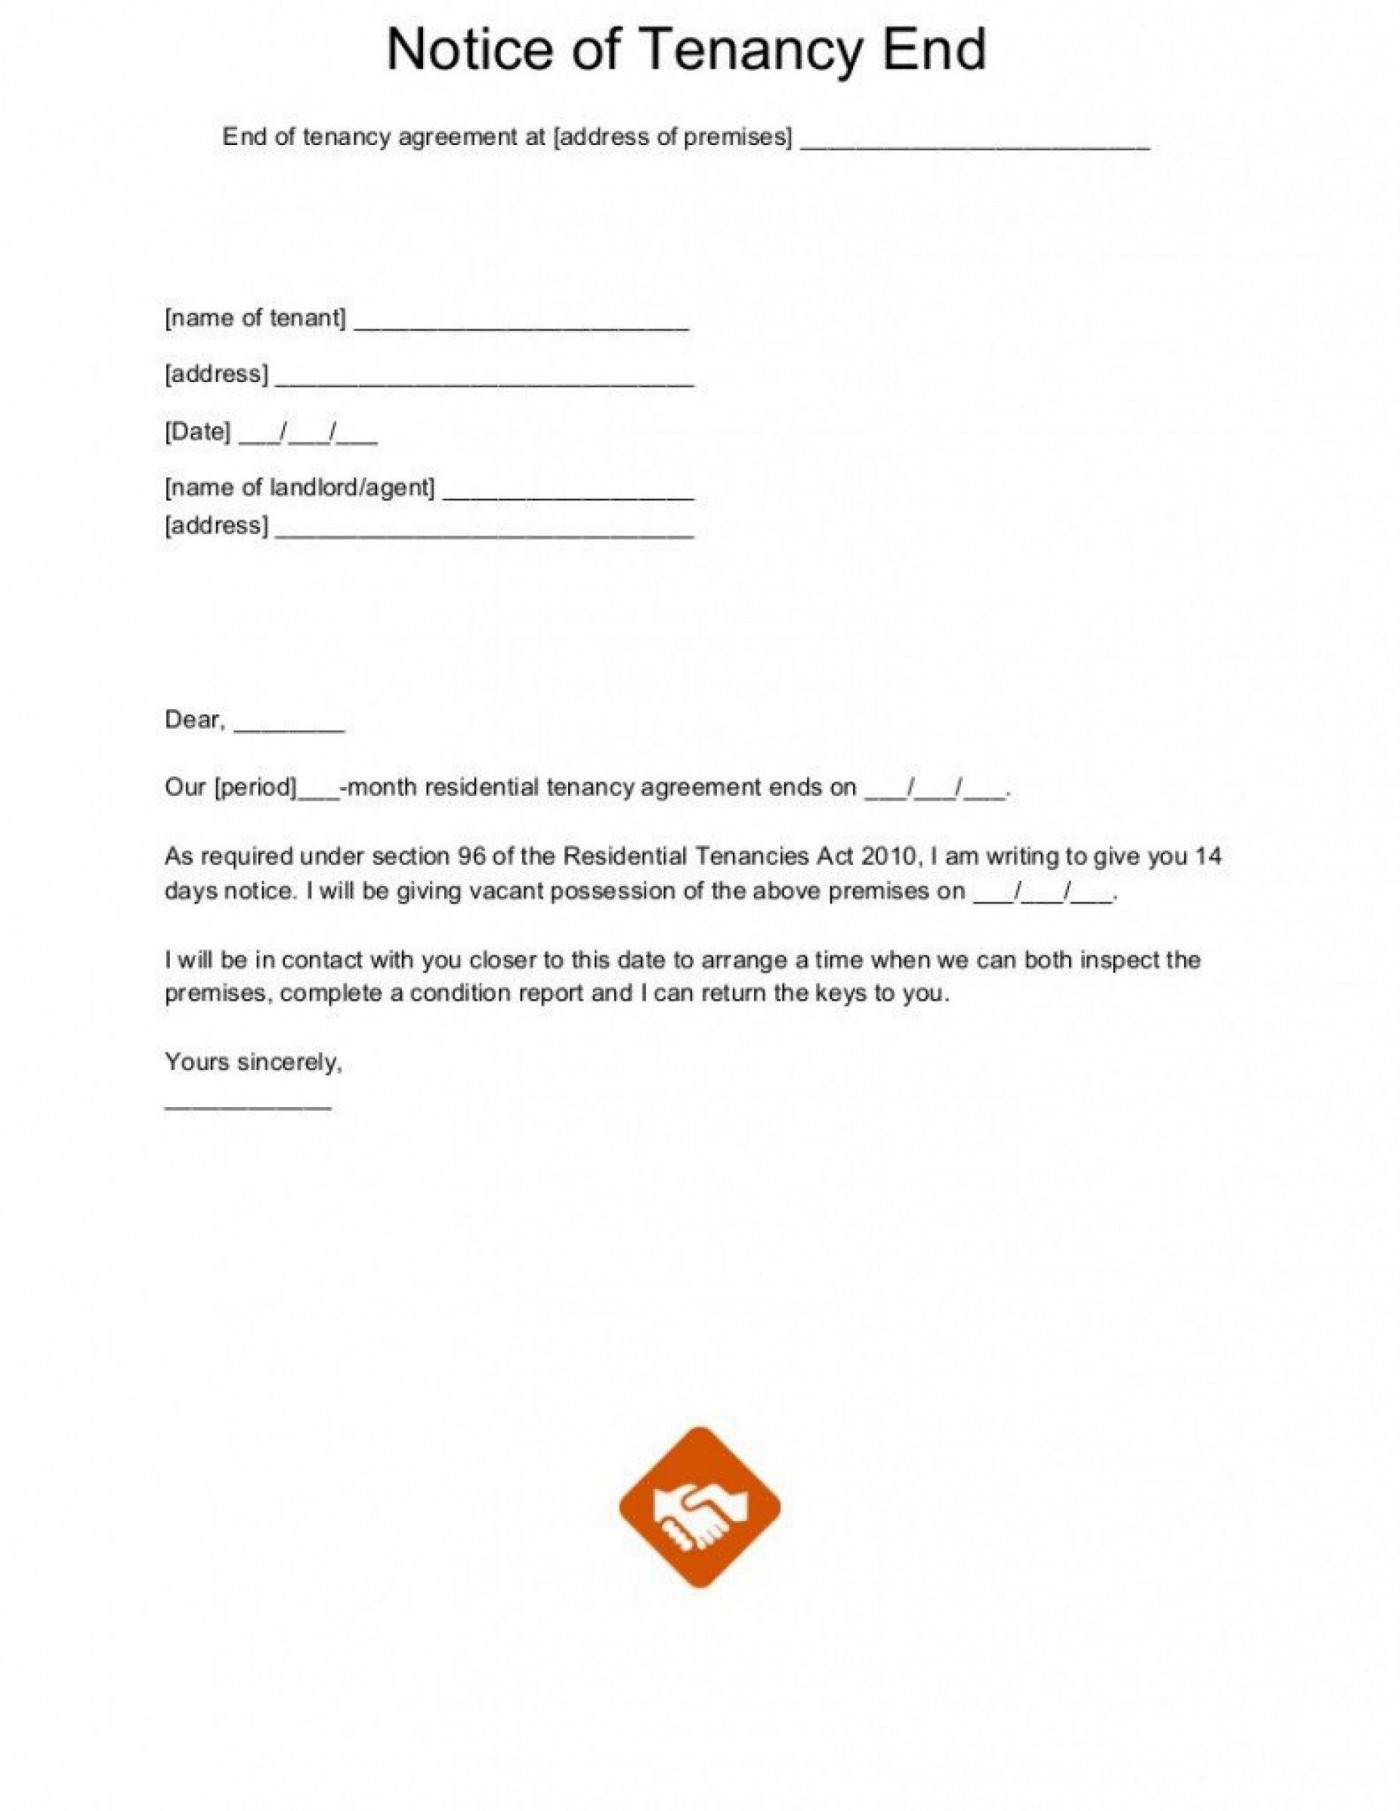 005 Formidable Template Letter To Terminate Rental Agreement Image  End Tenancy For Landlord Ending1400